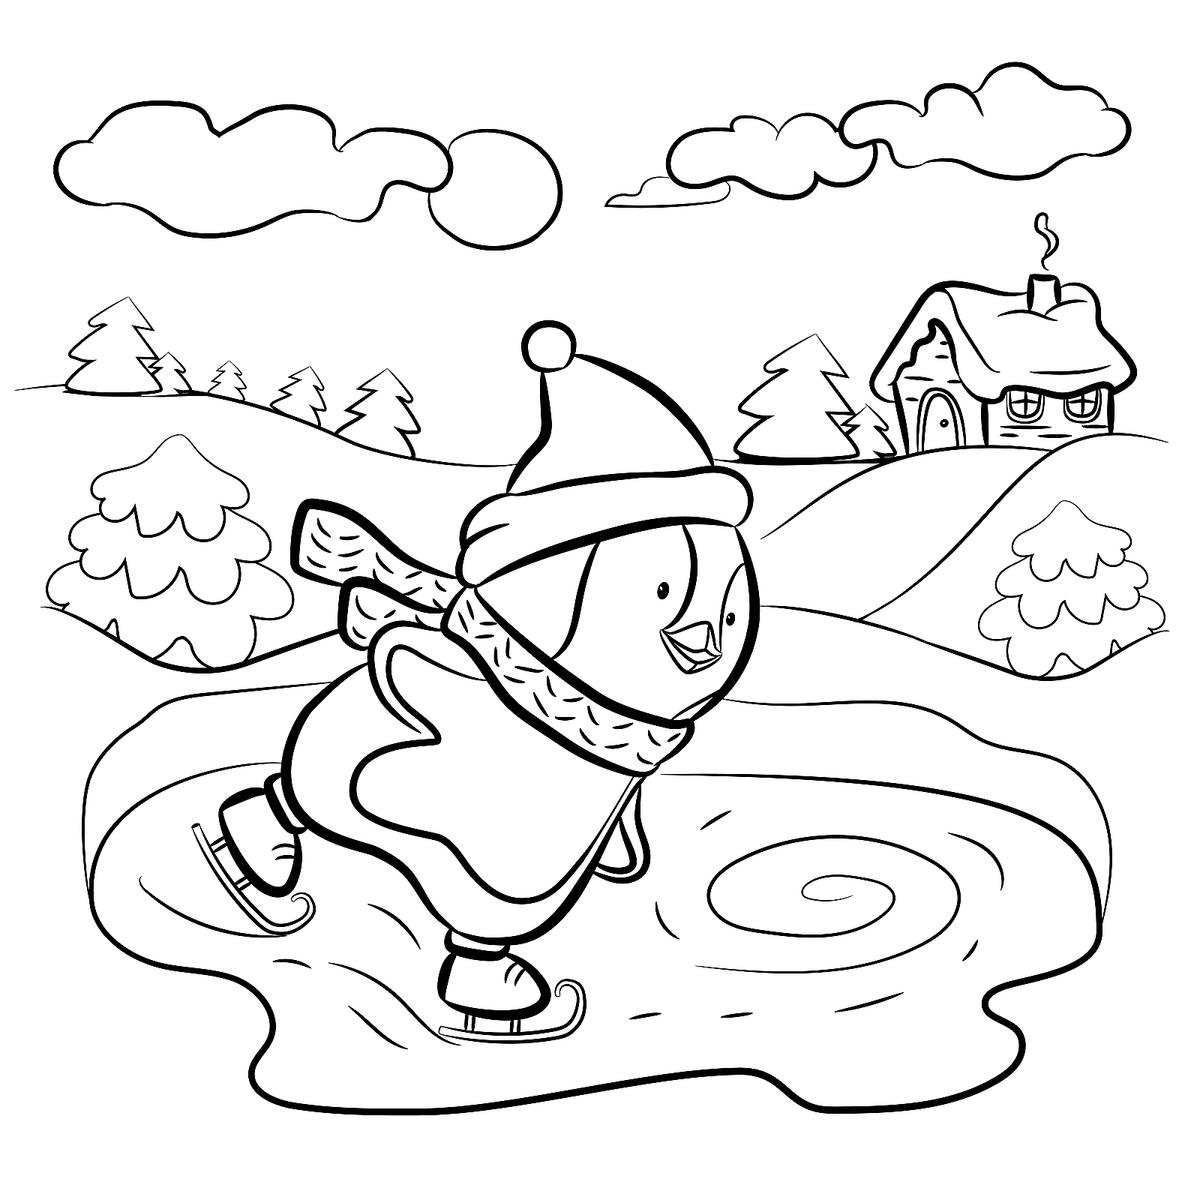 winter activities coloring pages | Winter Puzzle & Coloring Pages: Printable Winter-Themed ...